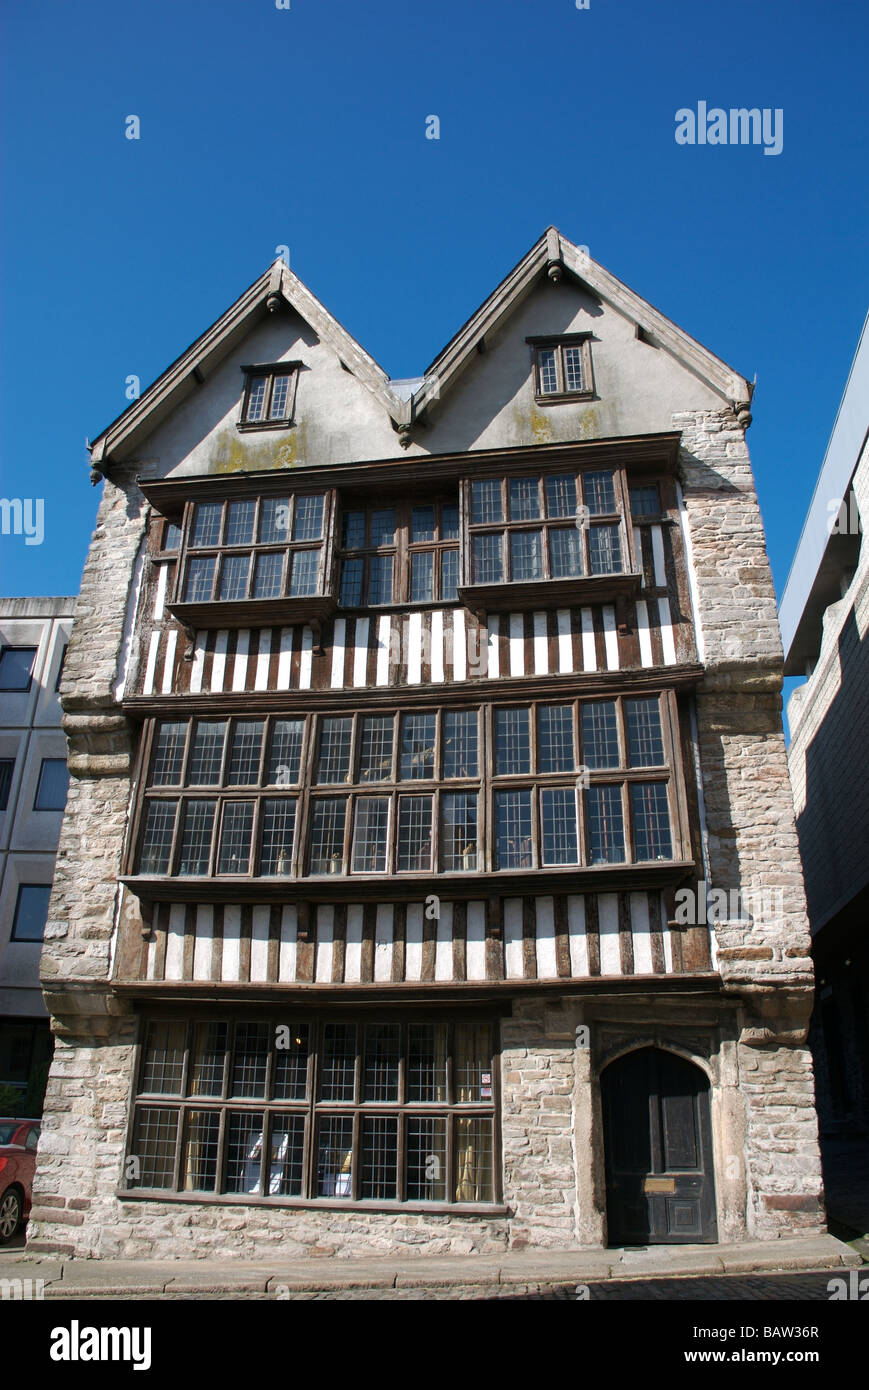 The Merchant's House Museum, Plymouth, Devon, UK - Stock Image